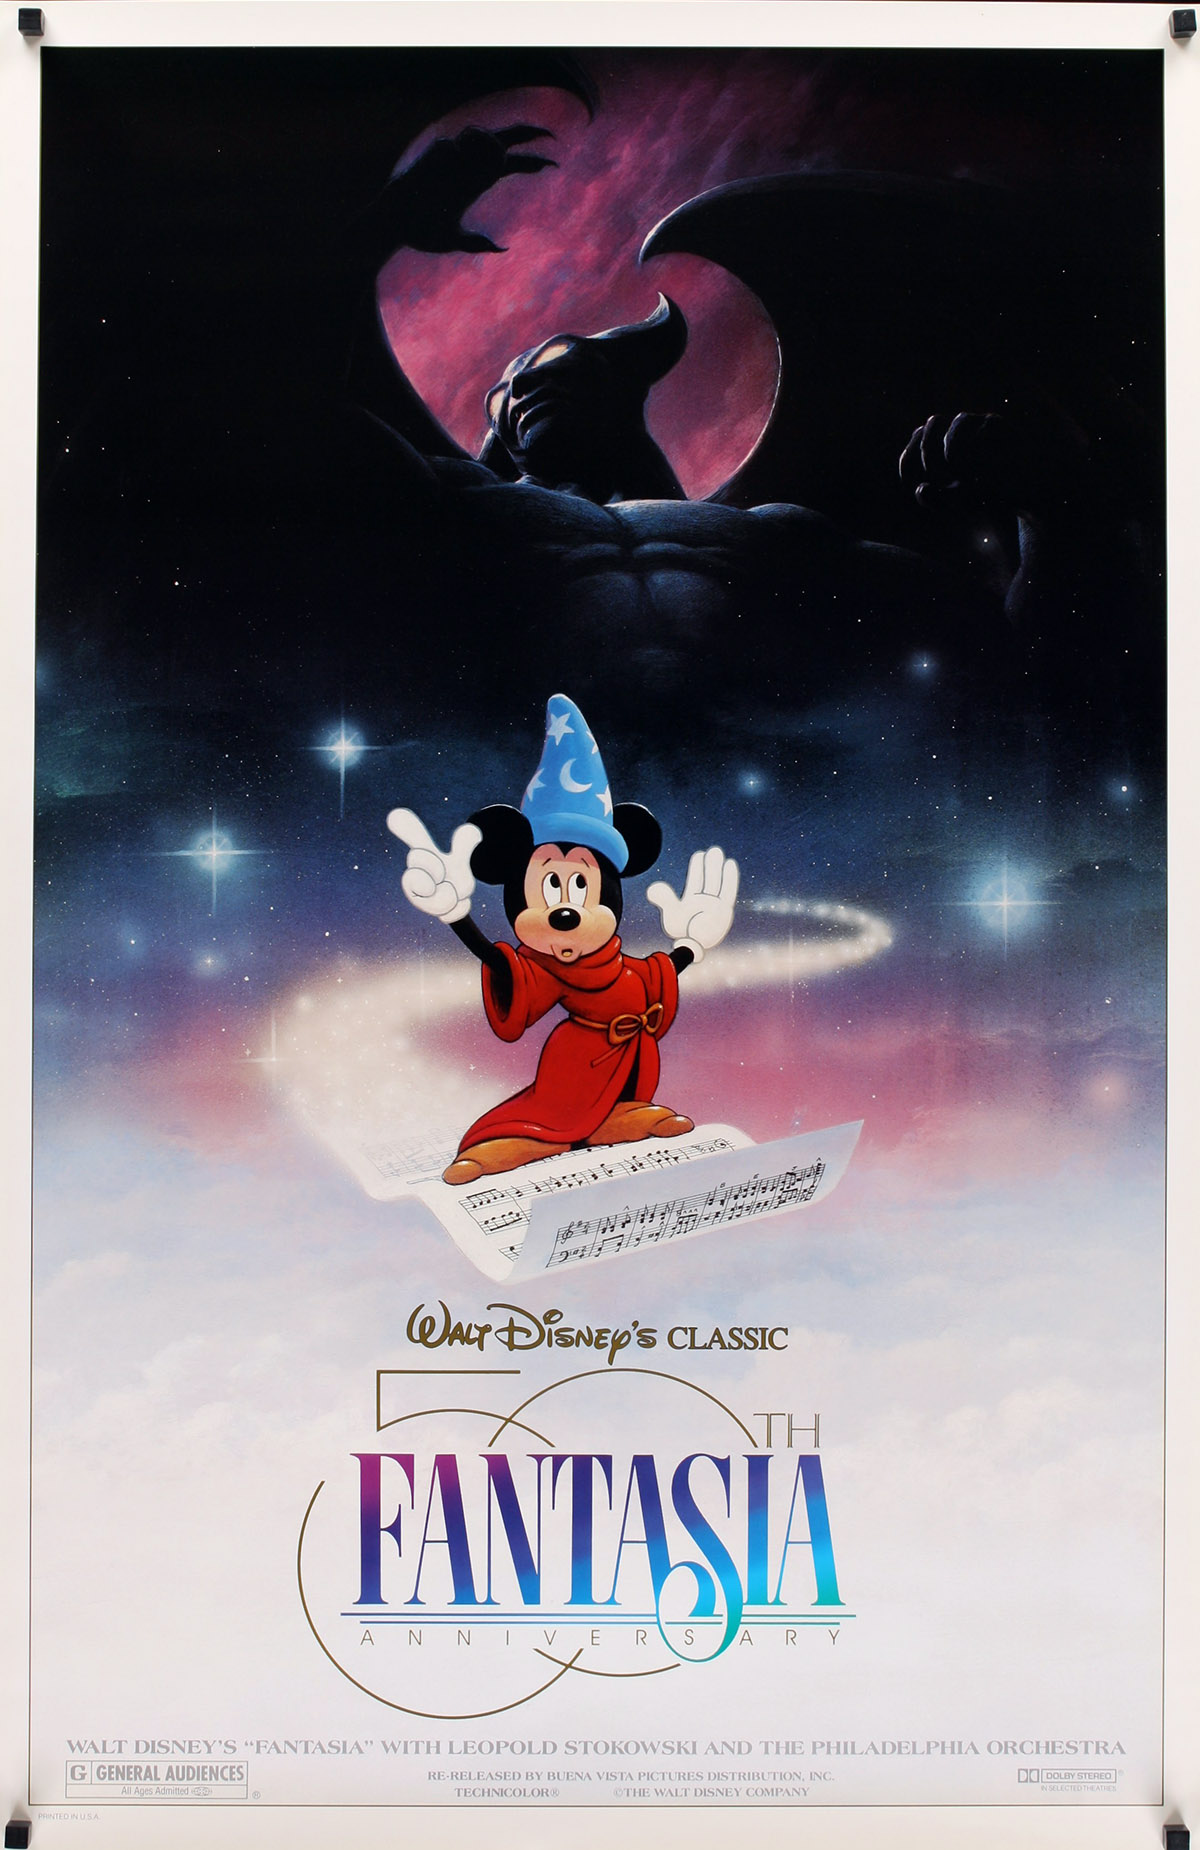 fantasia-ds-movie-poster-r90-great-image